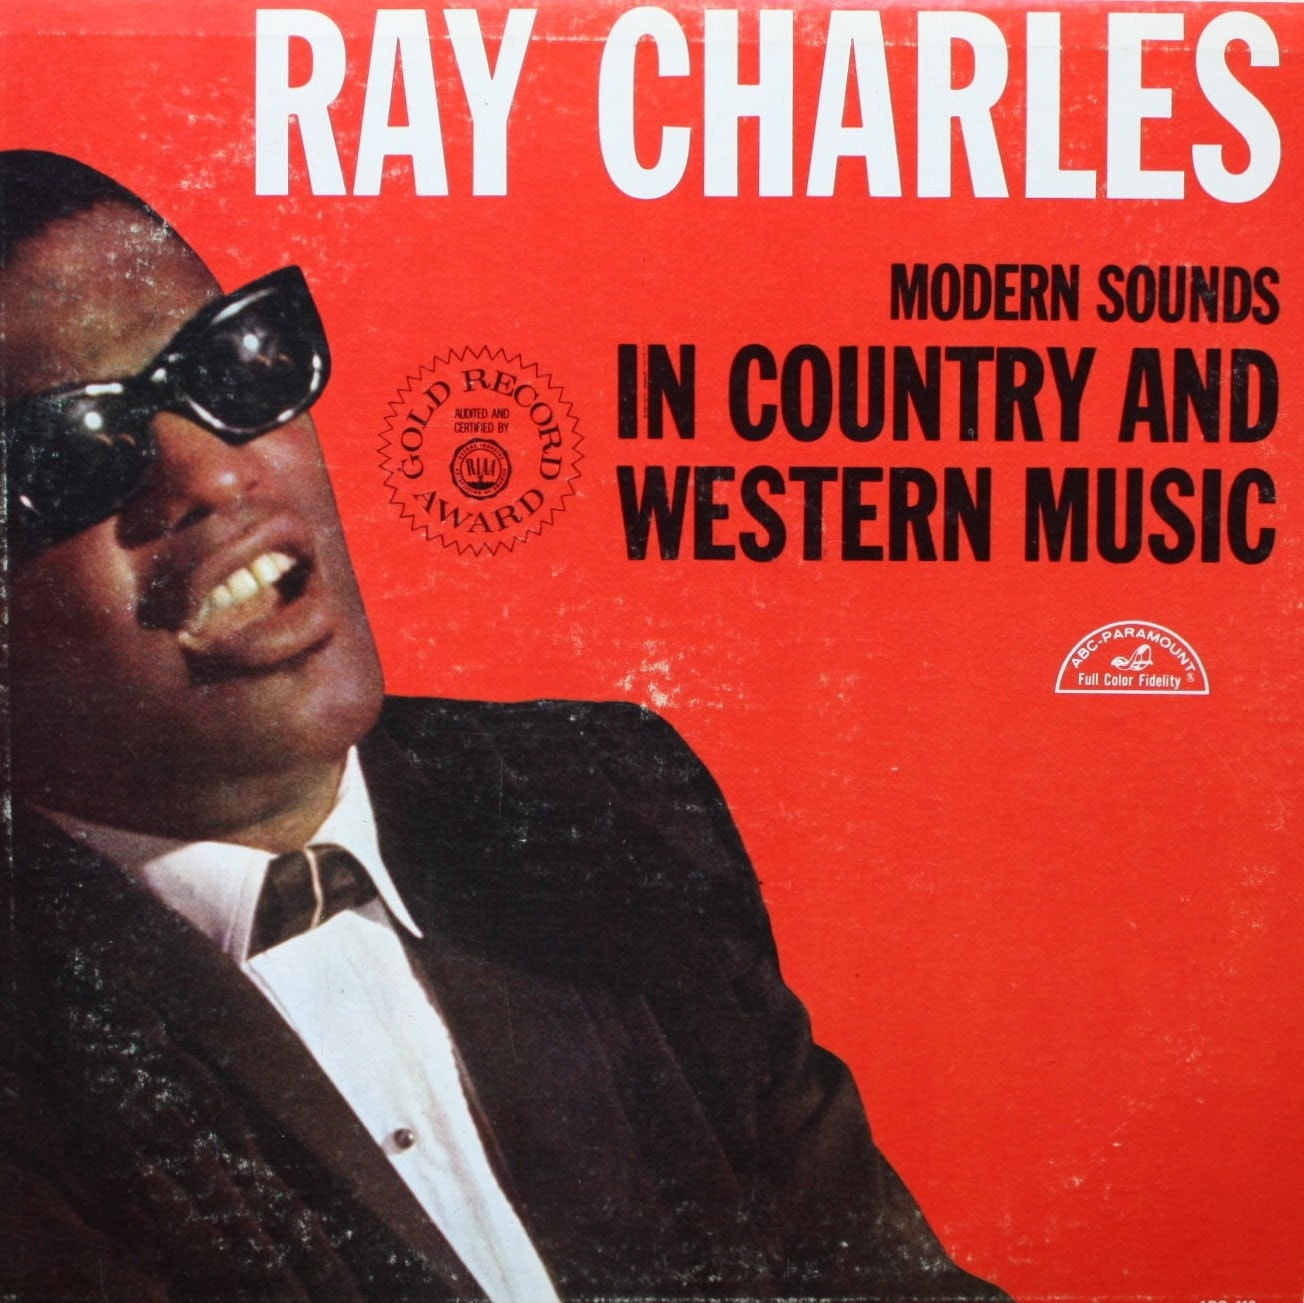 Ray Charles Lp Record Album Modern Sounds In Country And